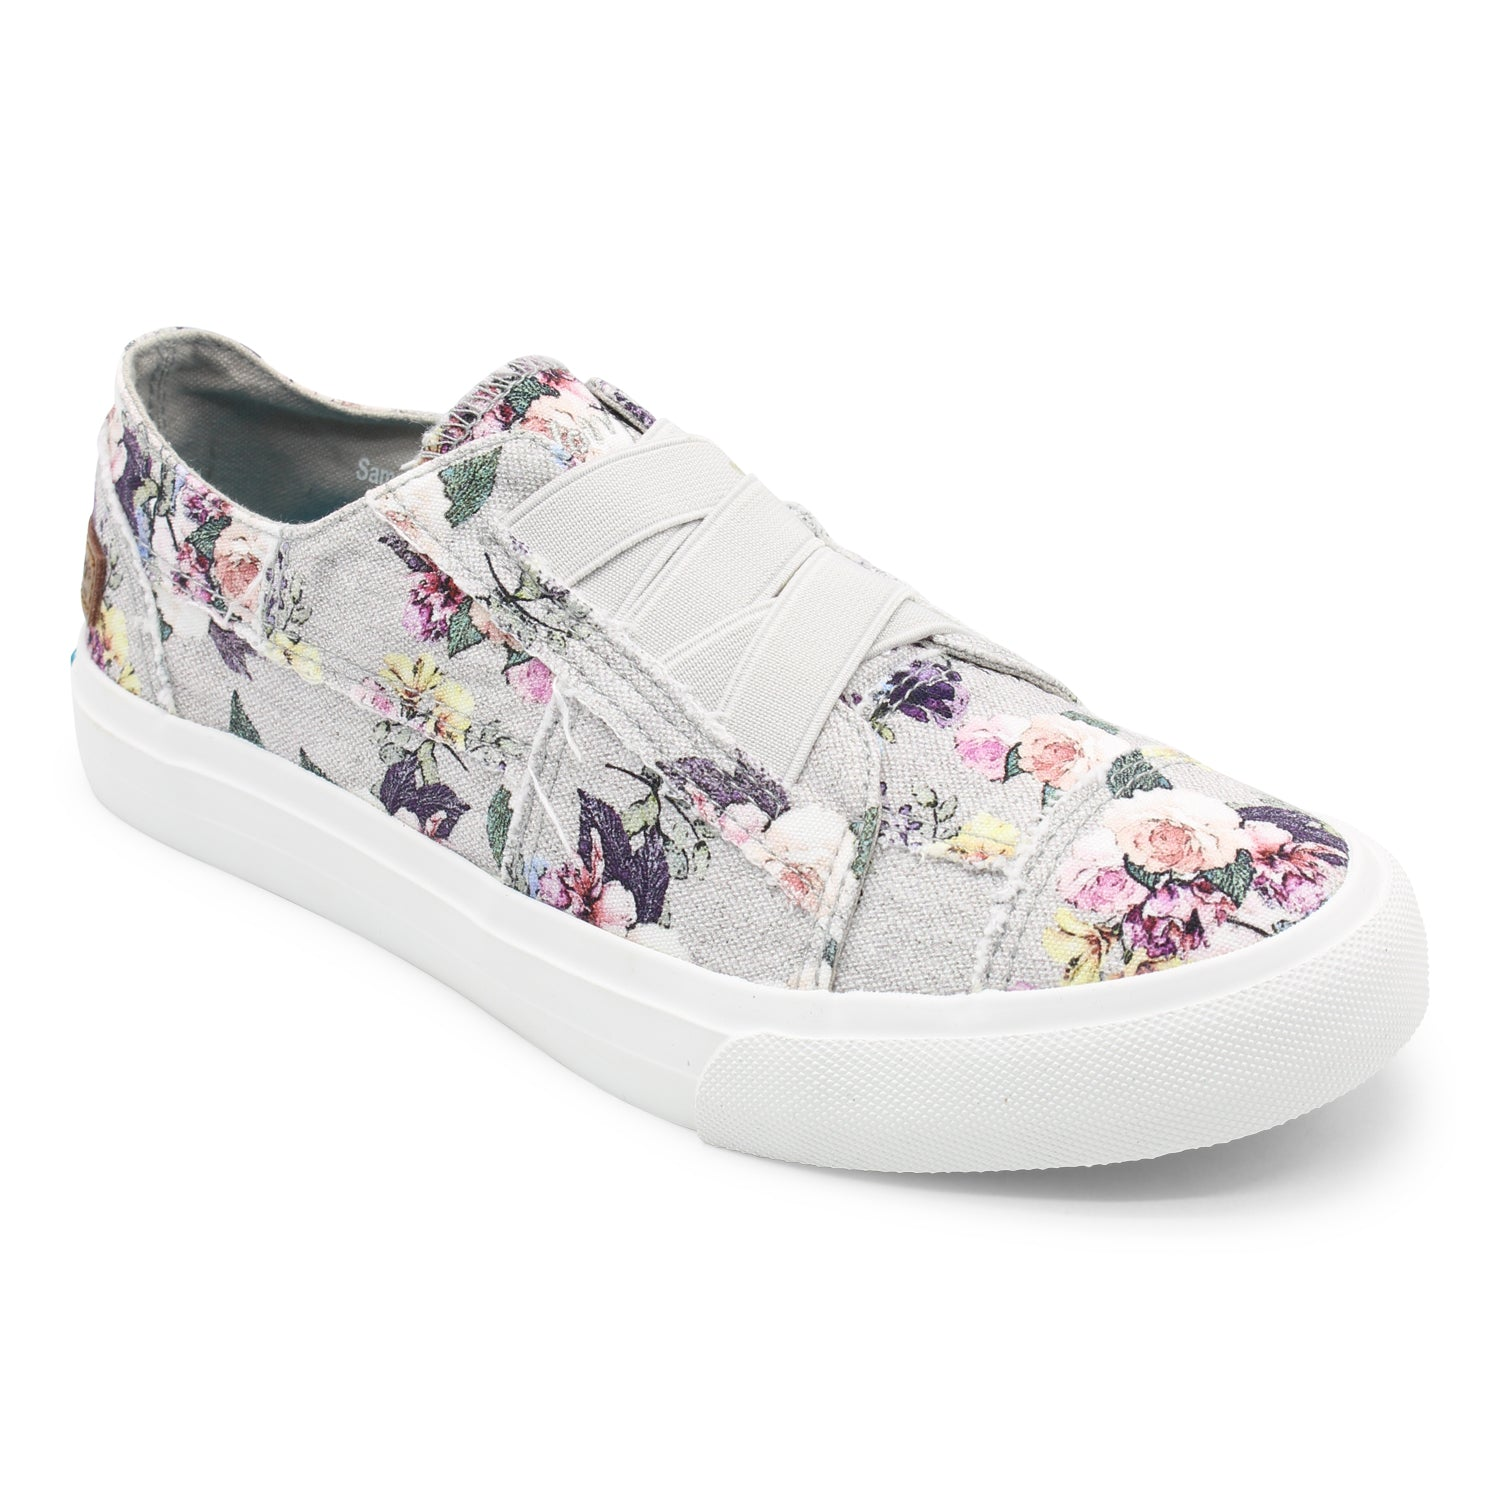 'Blowfish Malibu' Marley - ZS-0071 513 - Slip-on Shoe - Grey Bella Print